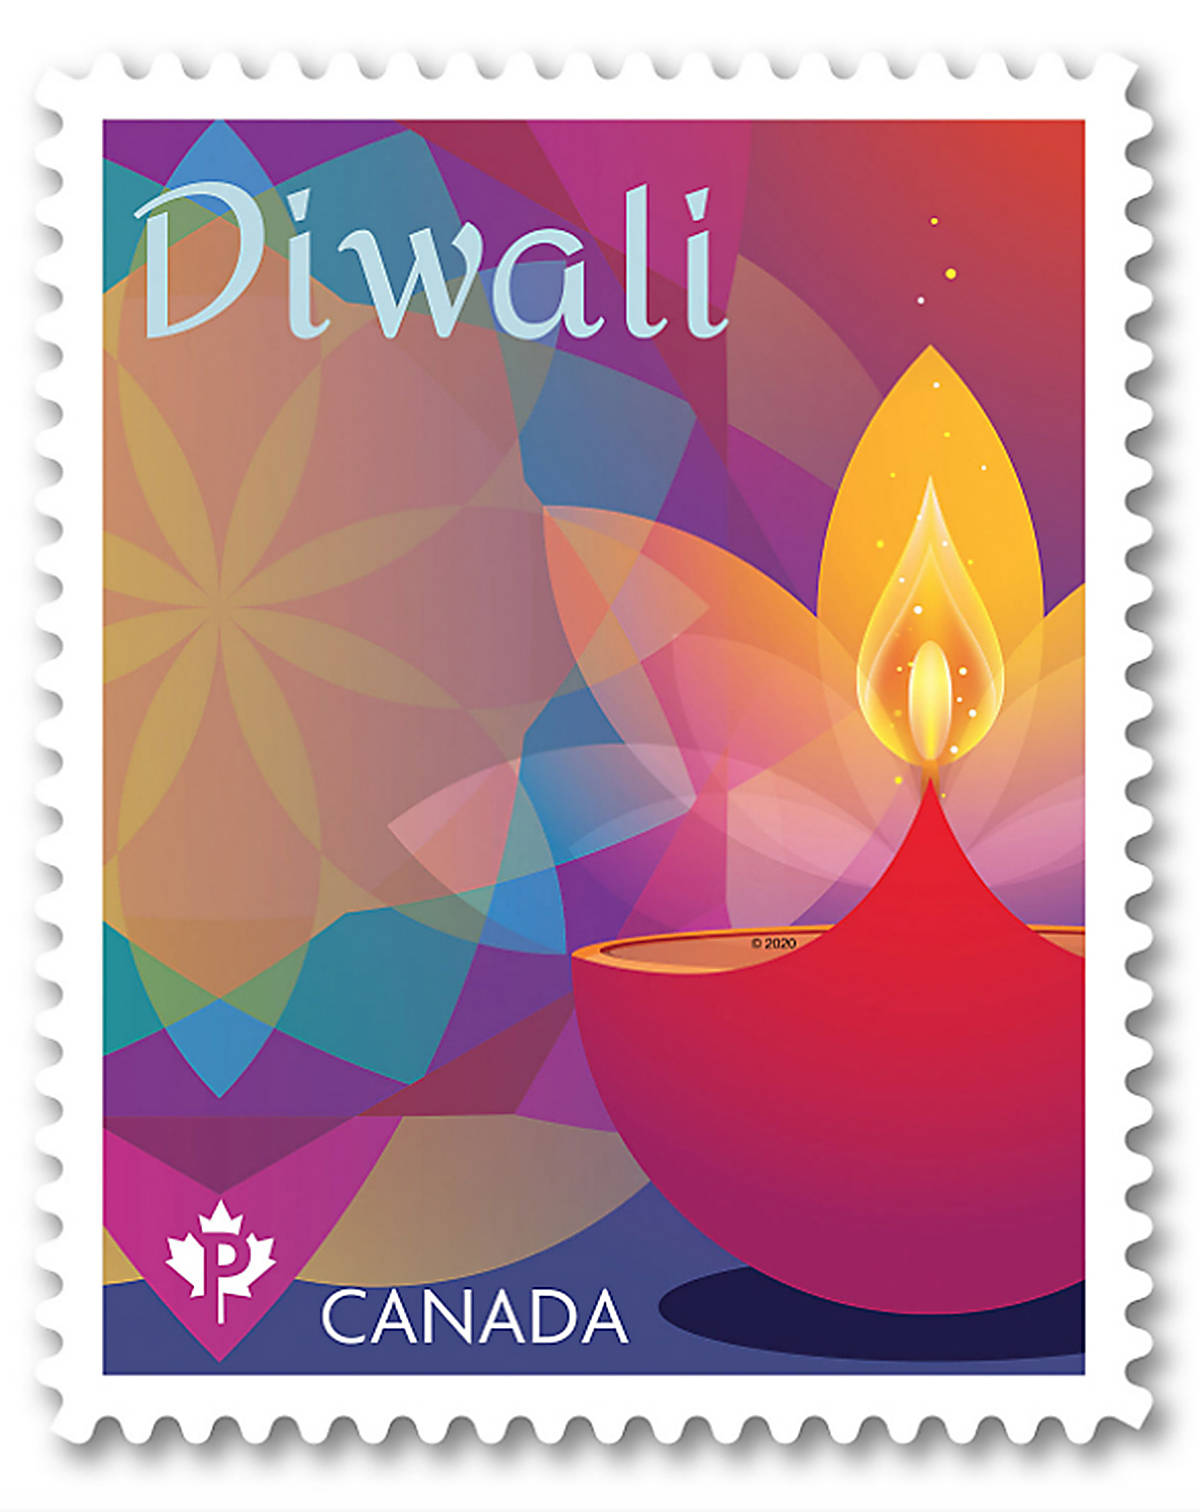 Canada Post's new Diwali-themed stamp. (Photo: canadapost.ca/shop)